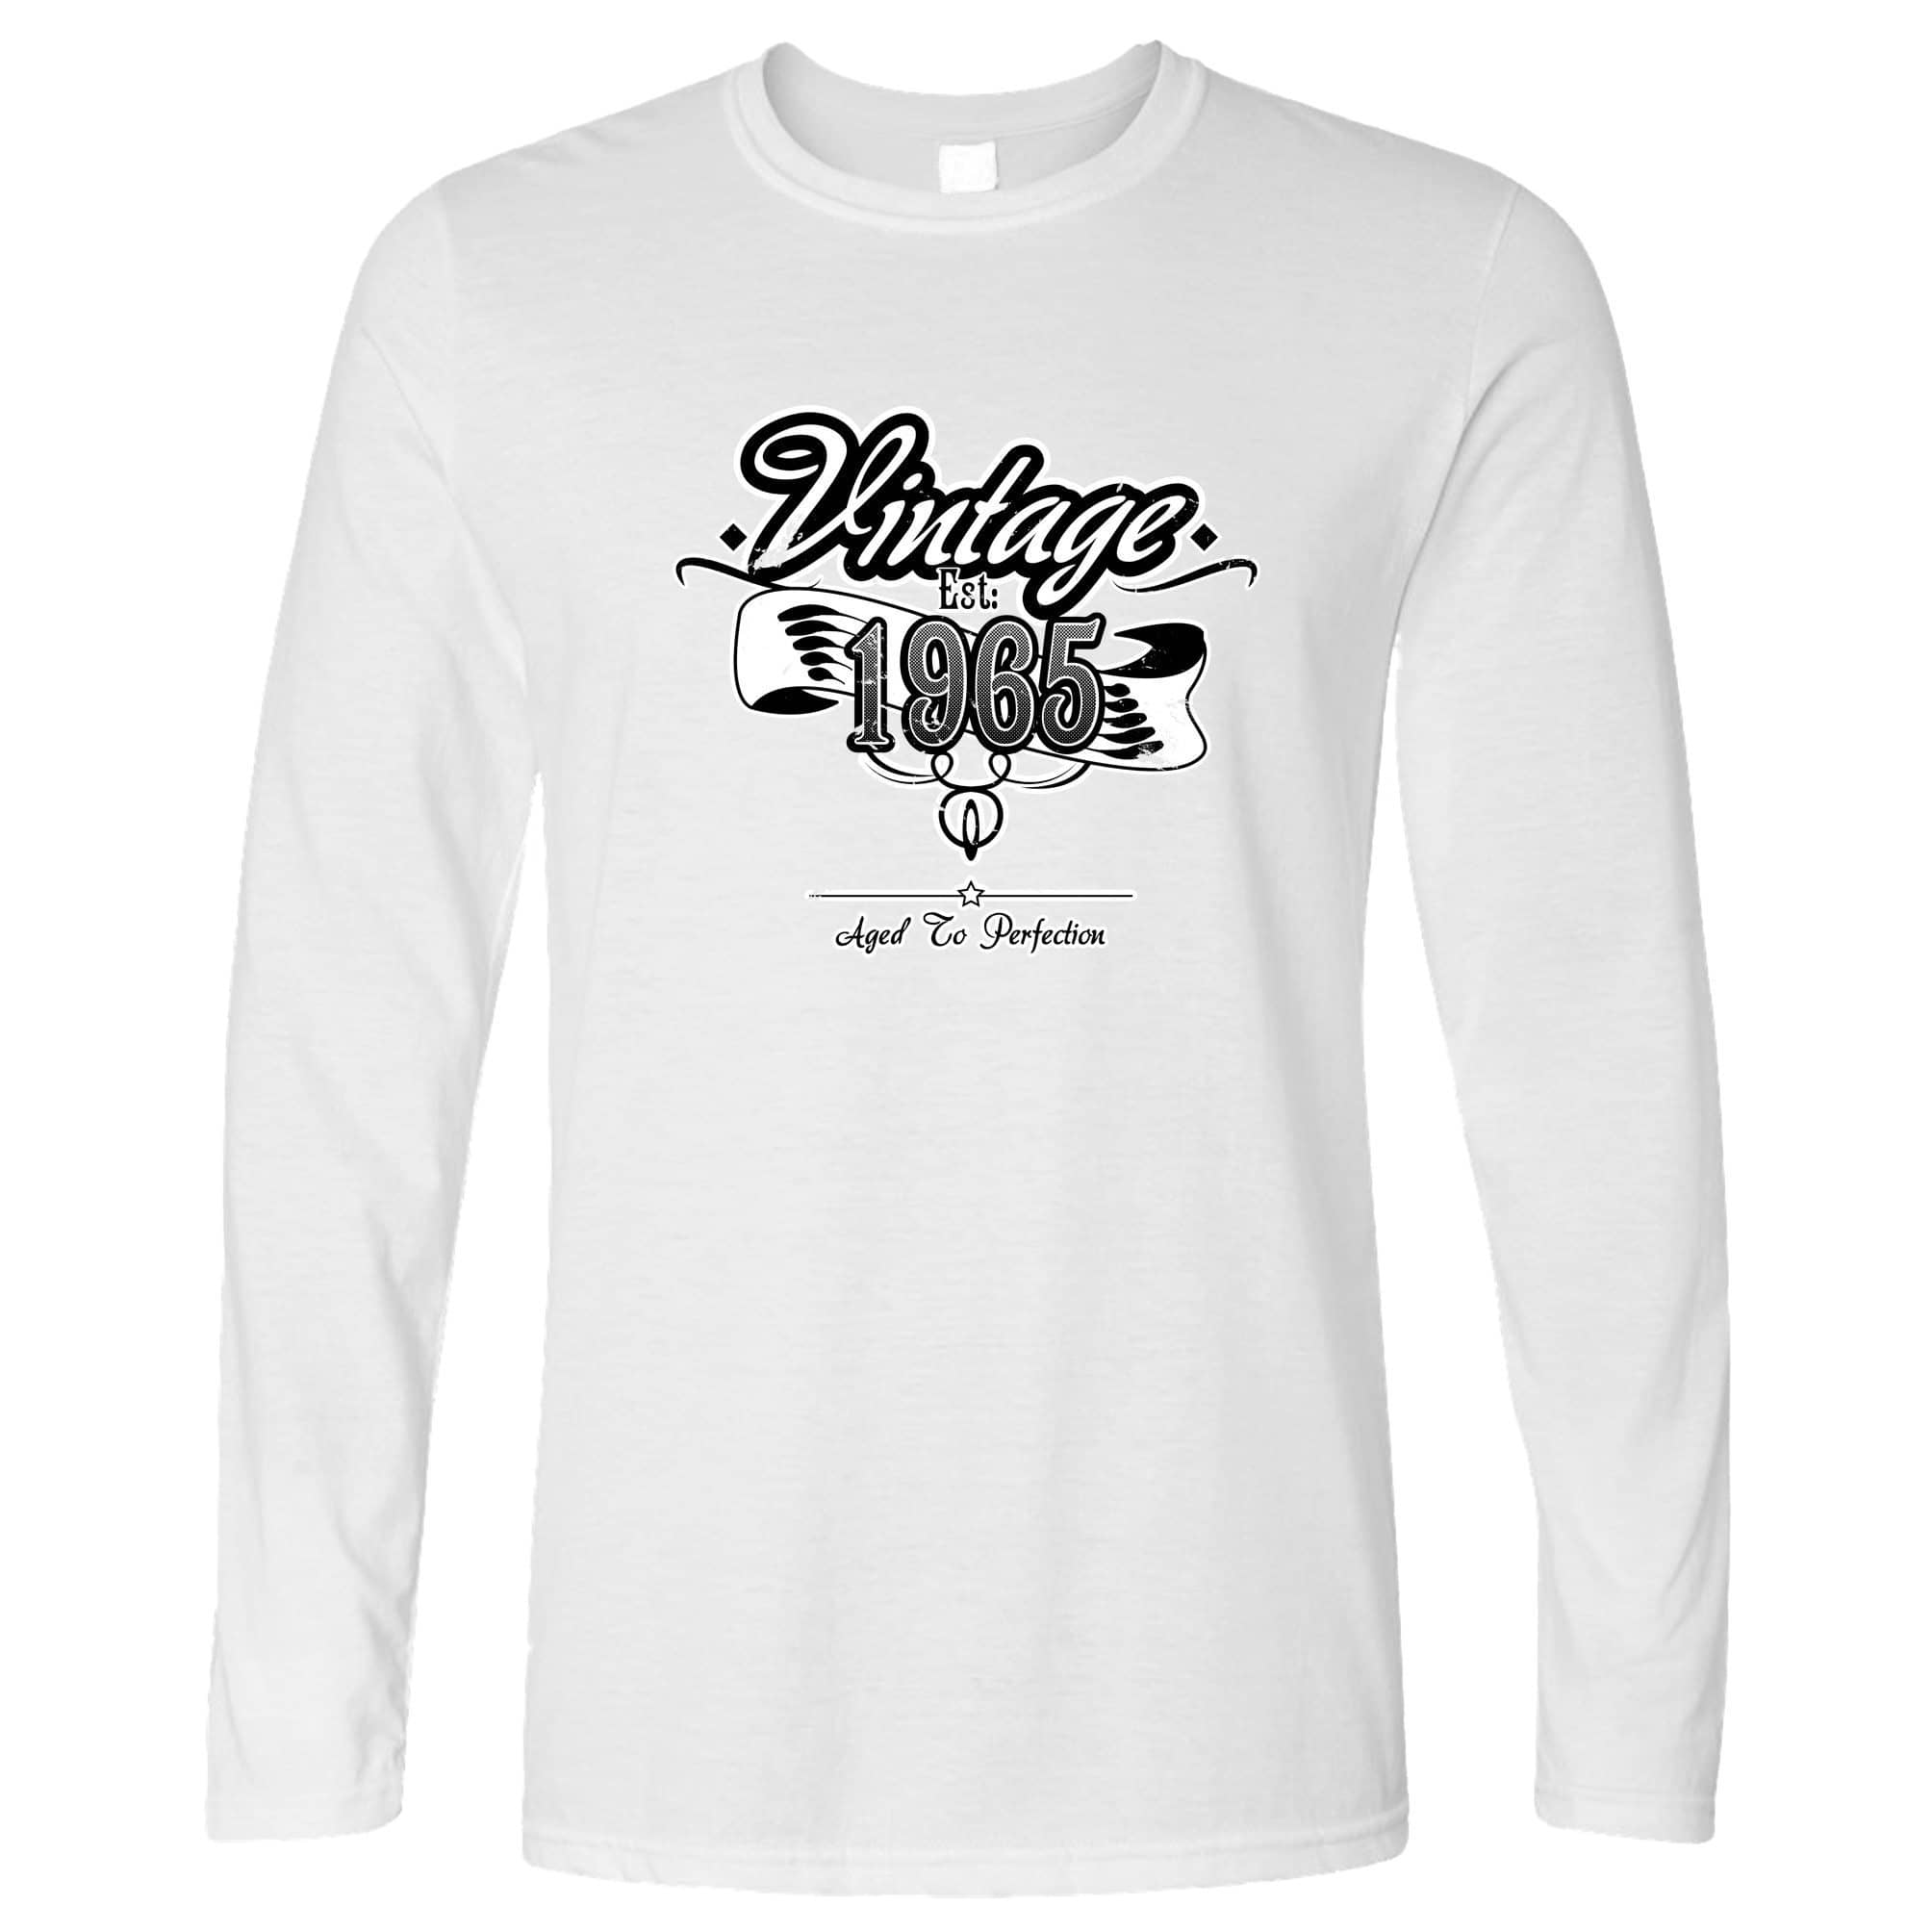 Birthday Long Sleeve Vintage Est. 1965 Aged To Perfection T-Shirt